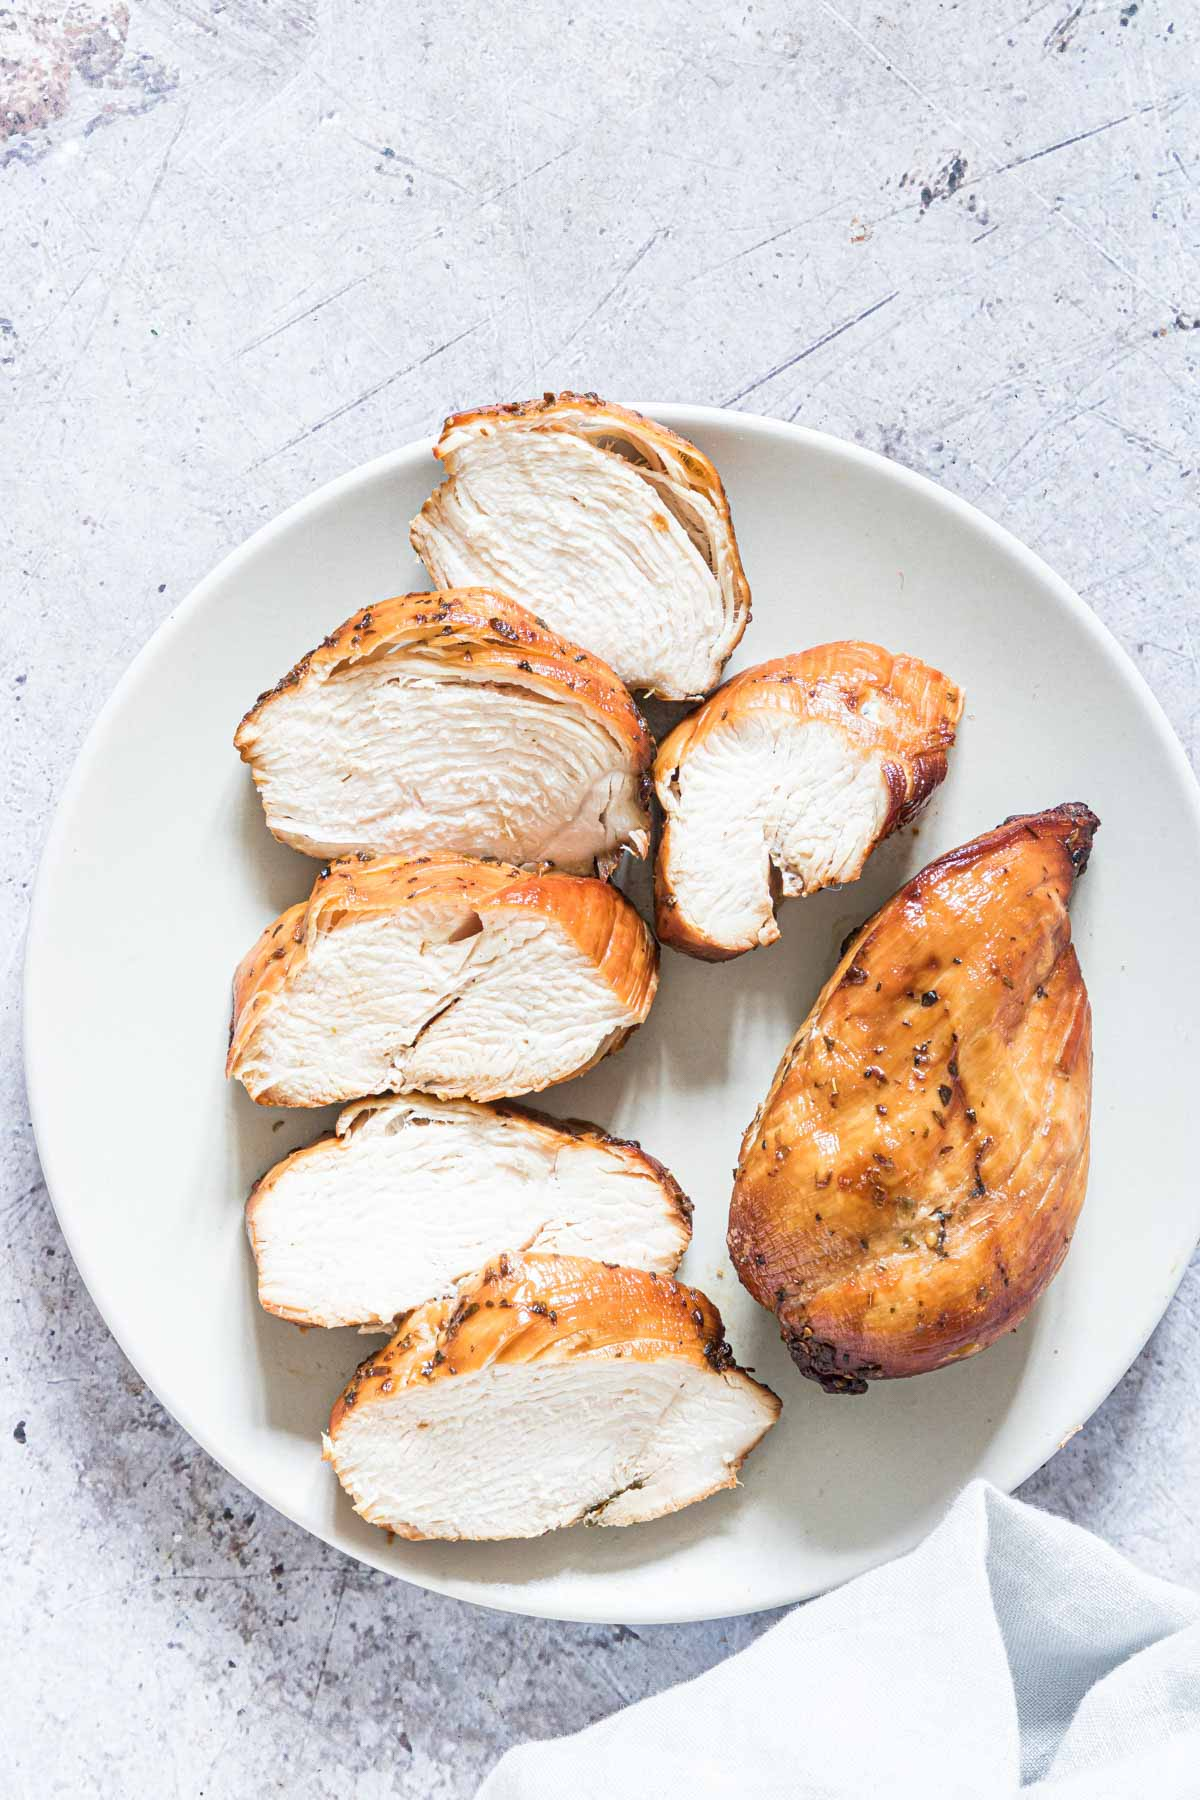 the finished air fryer frozen chicken breast recipe